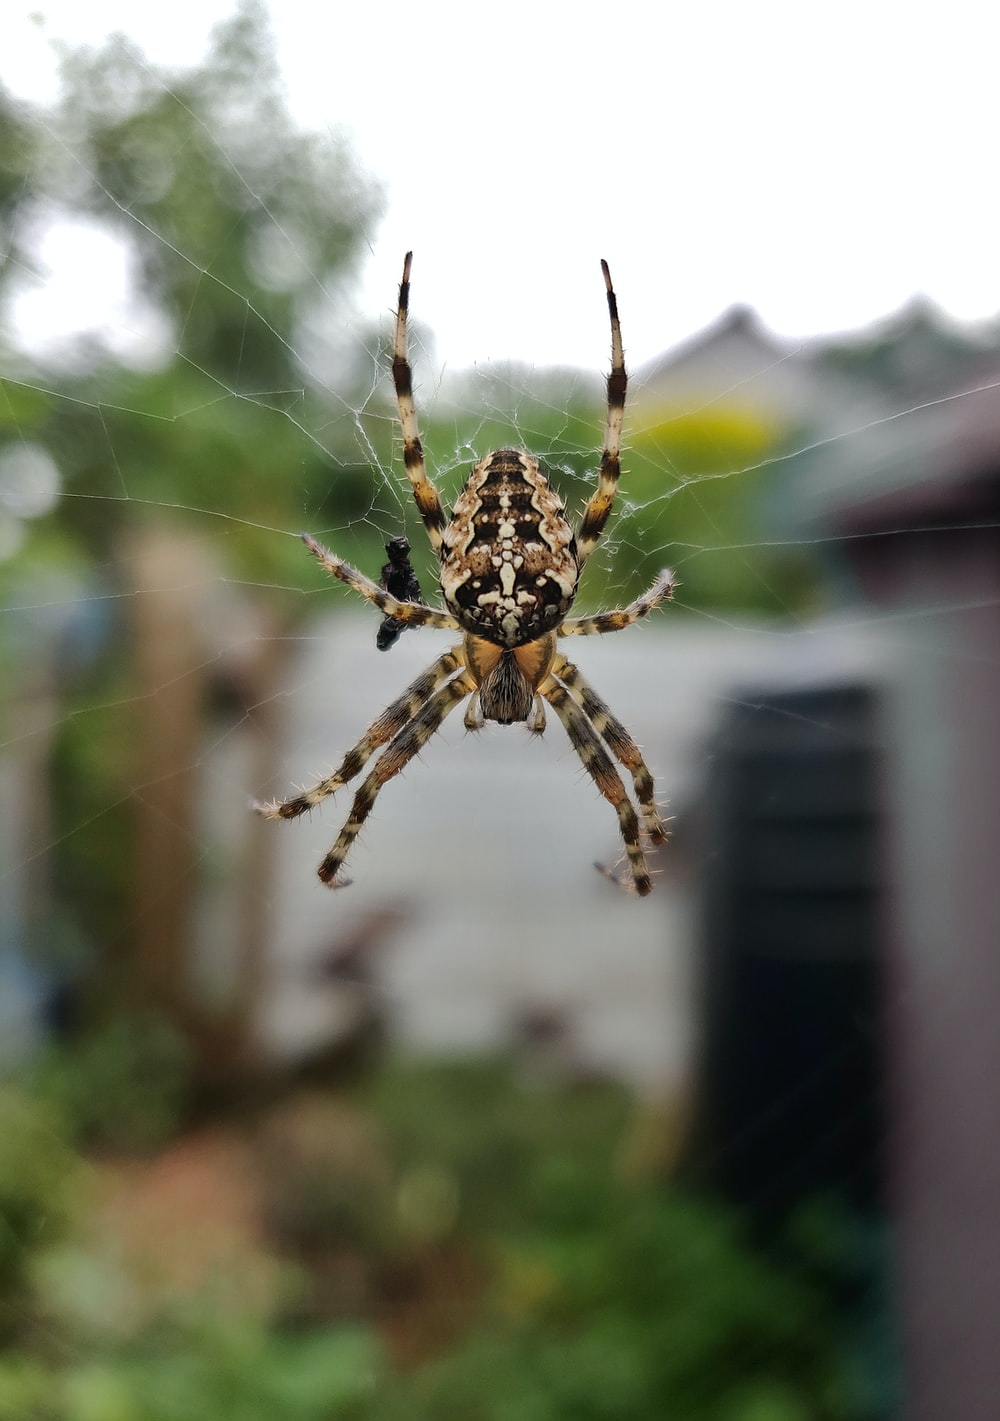 brown and black spider on web during daytime